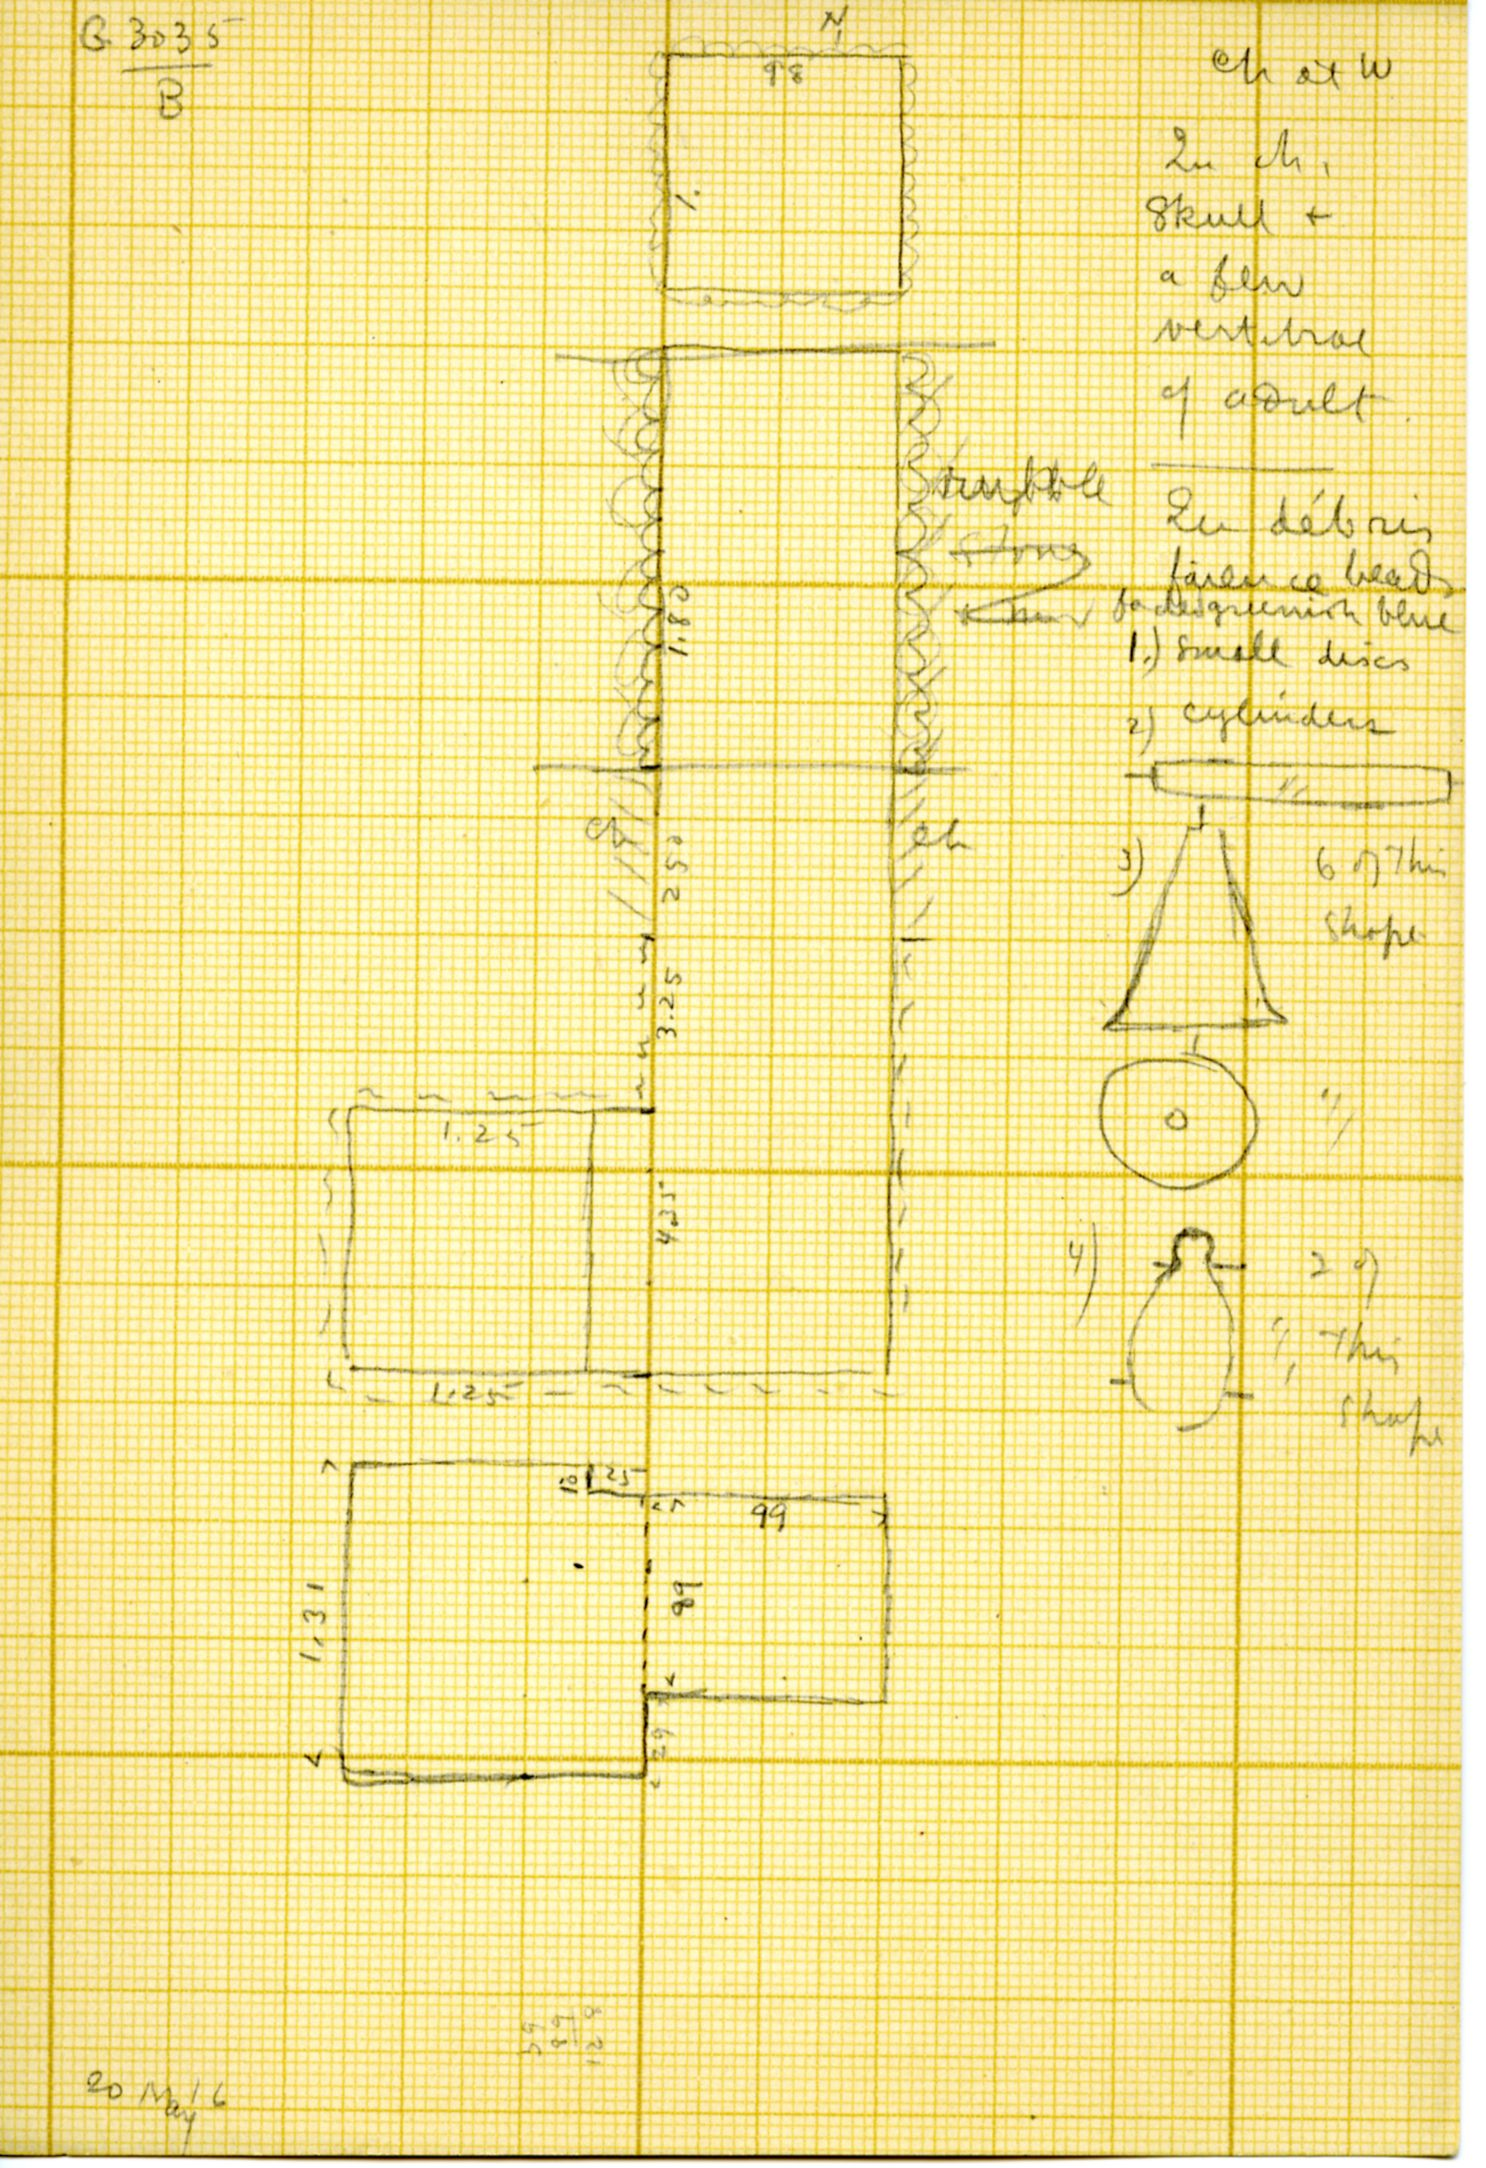 Maps and plans: G 3035, Shaft B